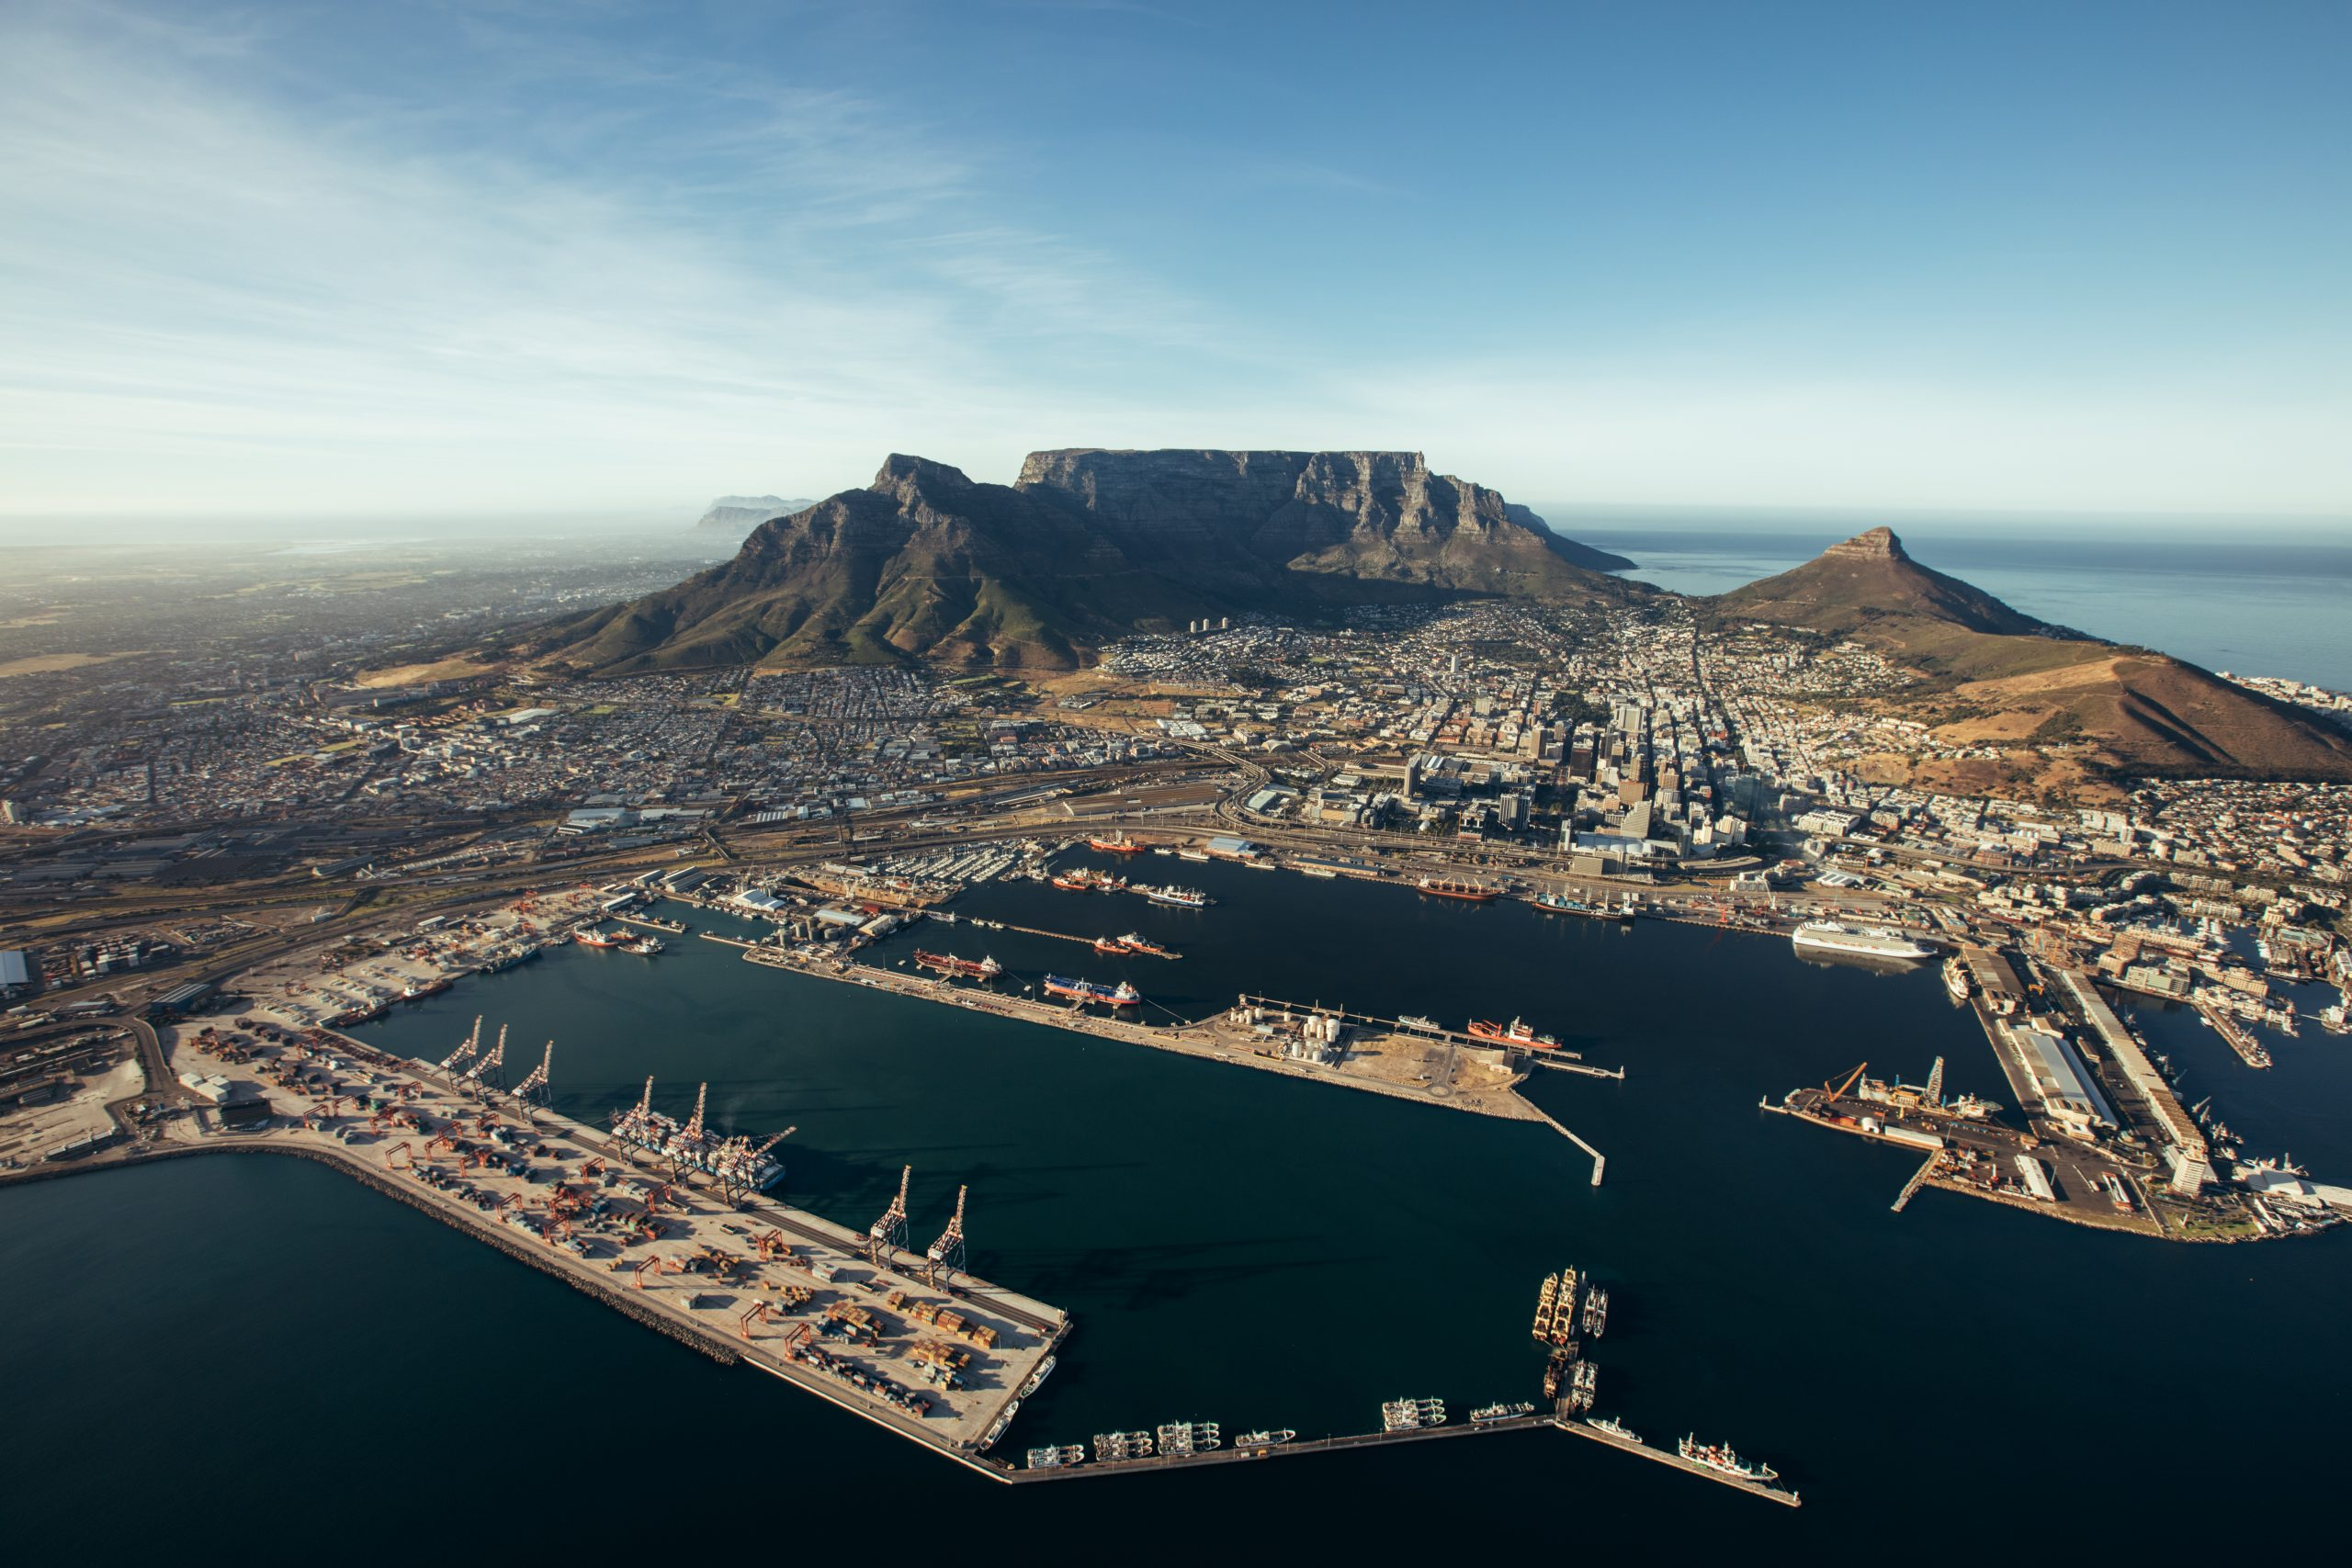 Aerial view of entrance of the port of cape town. Commercial docks of cape town harbour.